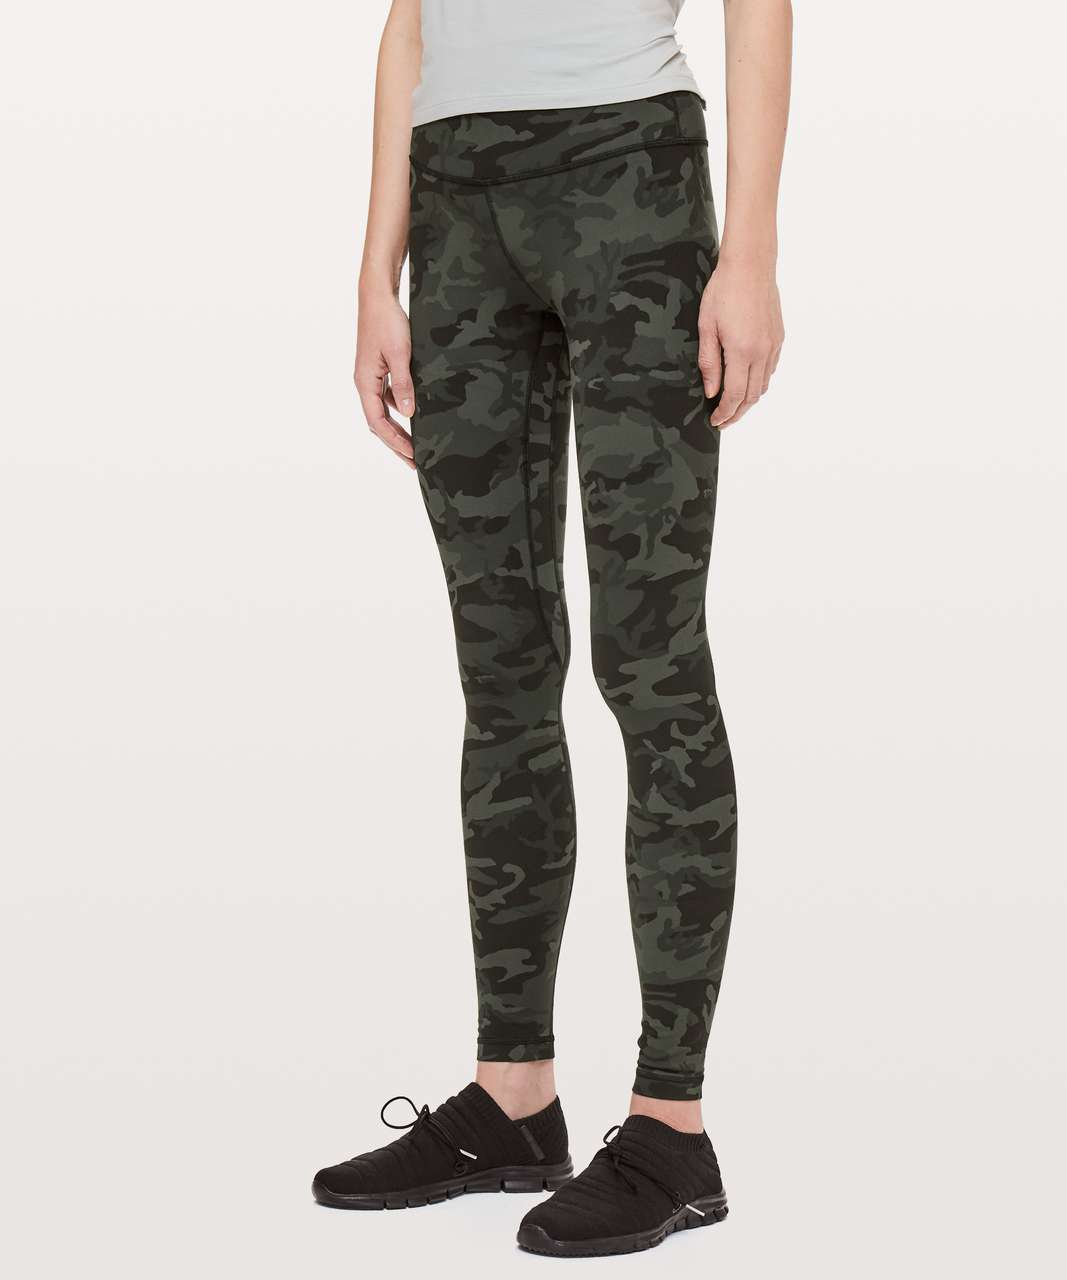 "Lululemon Align Pant *Full Length 28"" - Incognito Camo Multi Gator Green (First Release)"